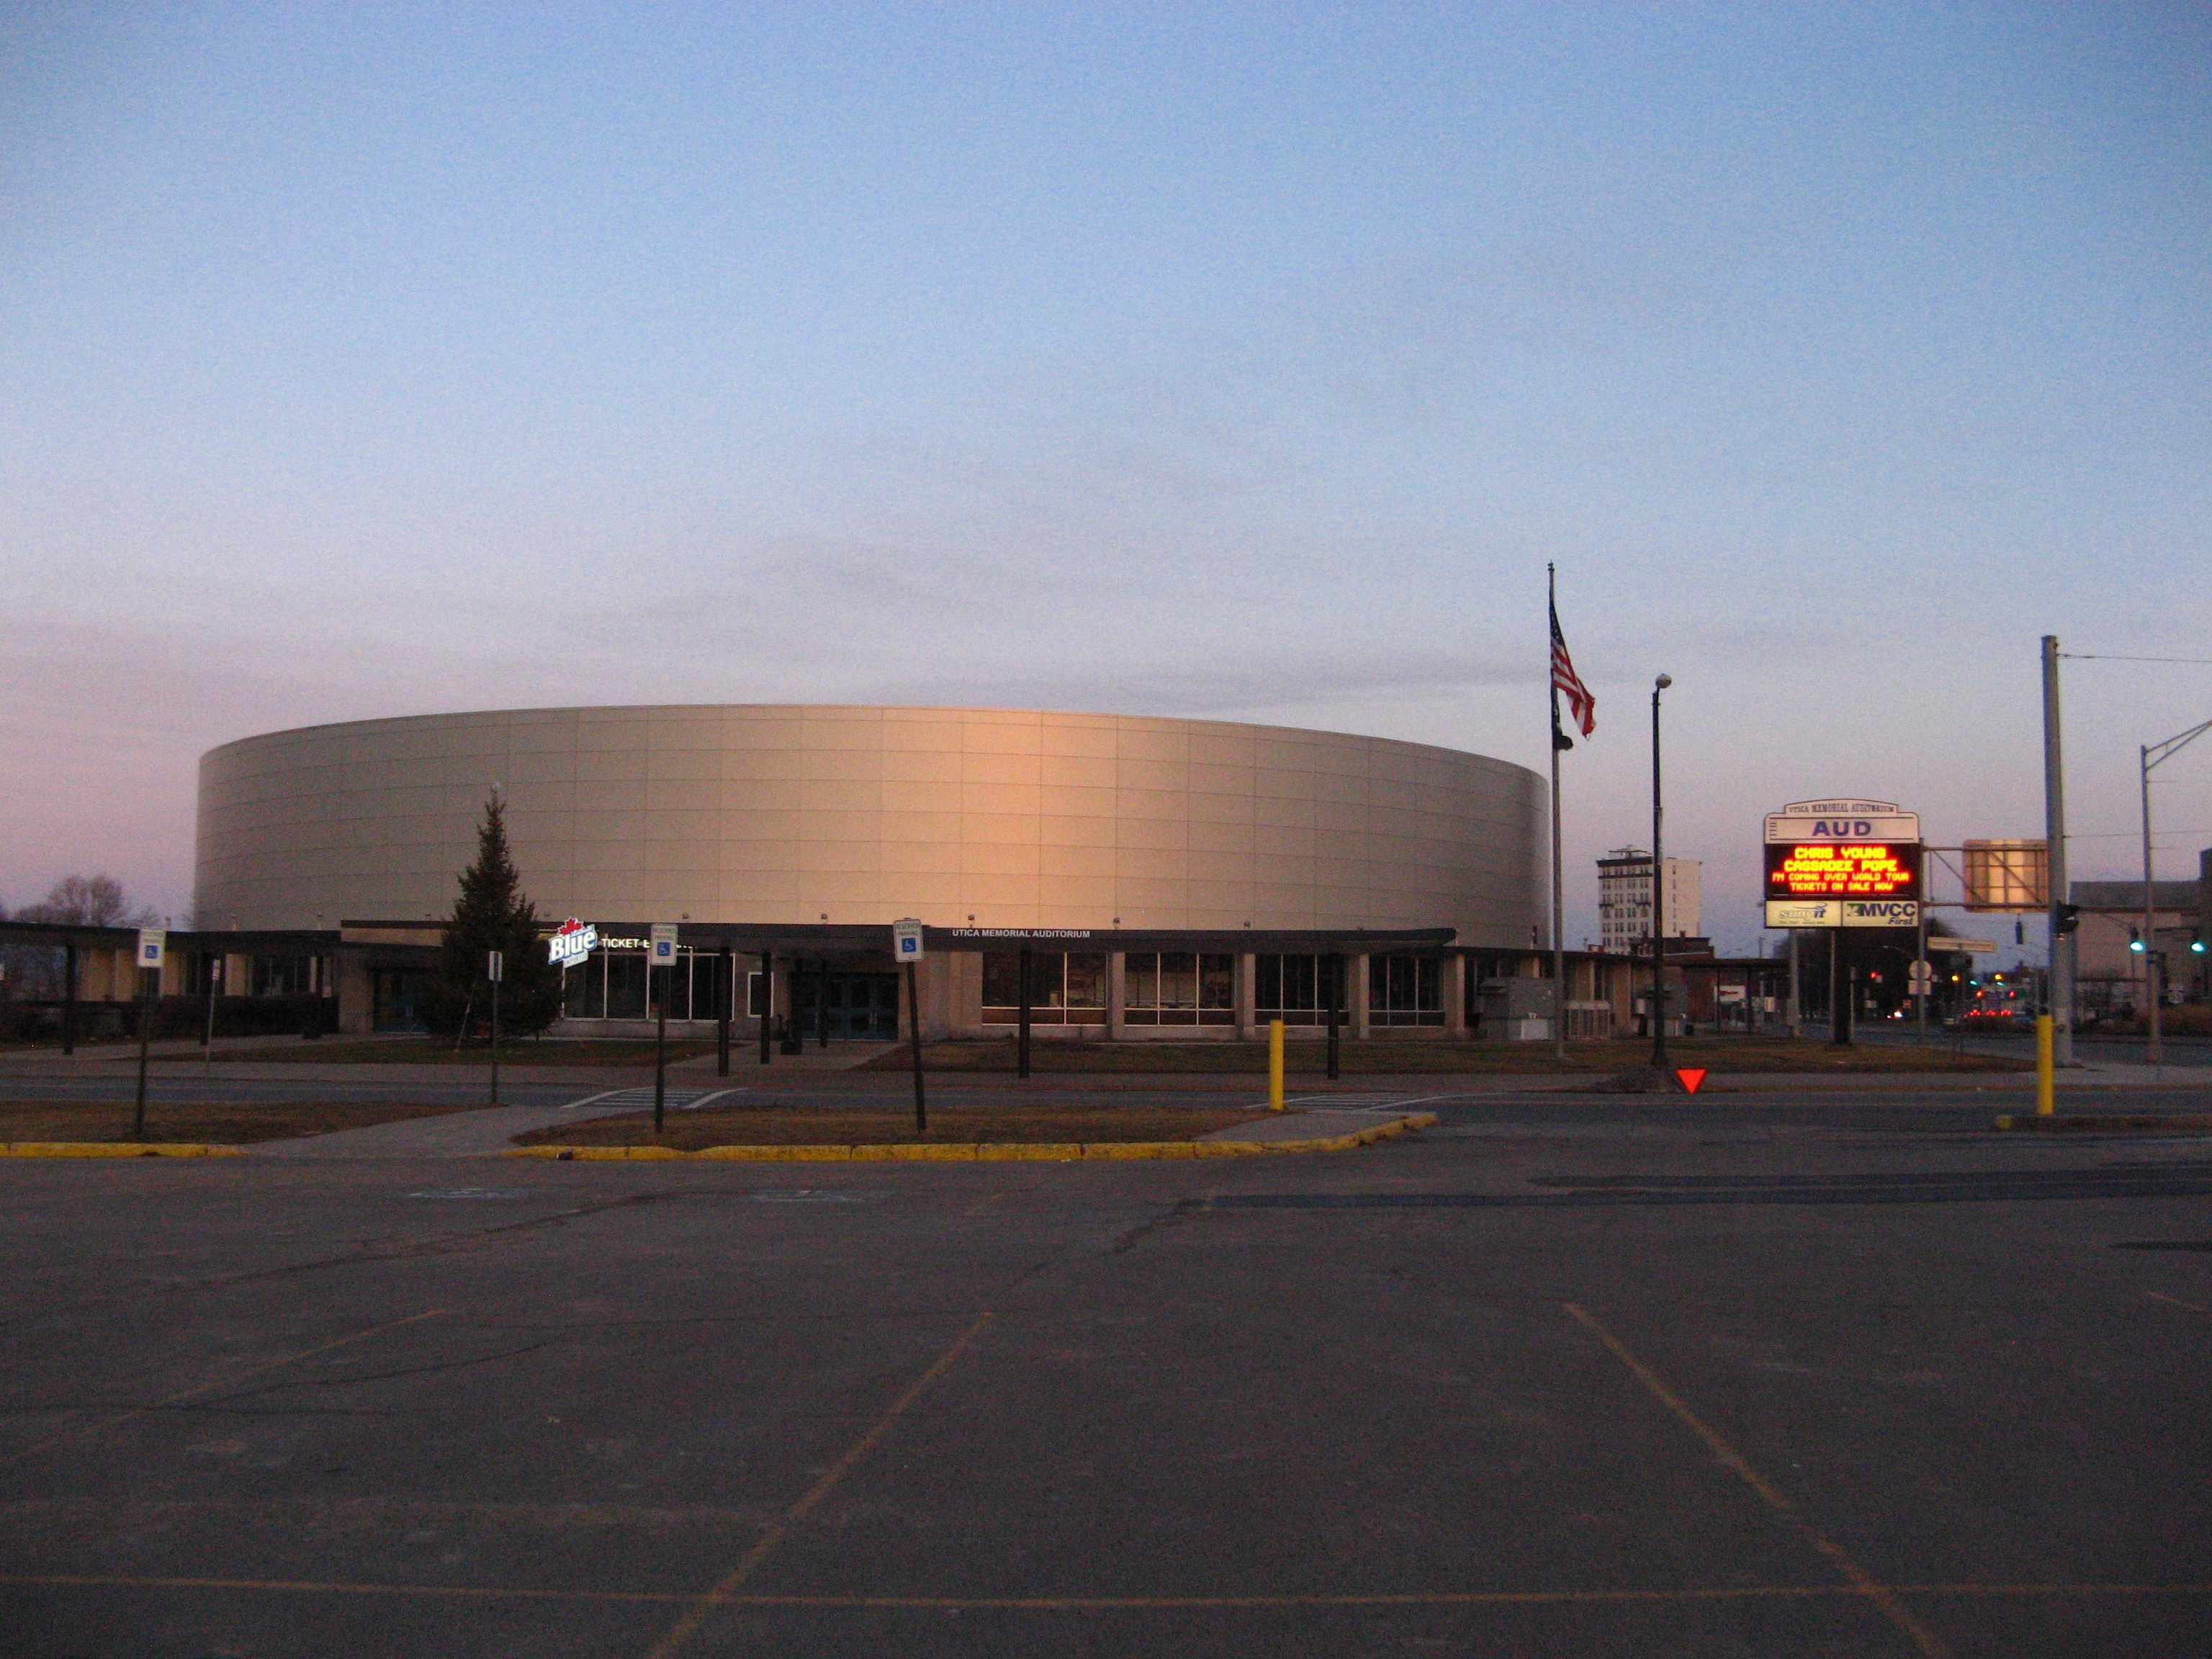 Utica Memorial Arena after renovation, 2016-02-07.jpg English: Utica Memorial Arena, Utica, New York after its 2015 renovation Date 7 February 2016 Source